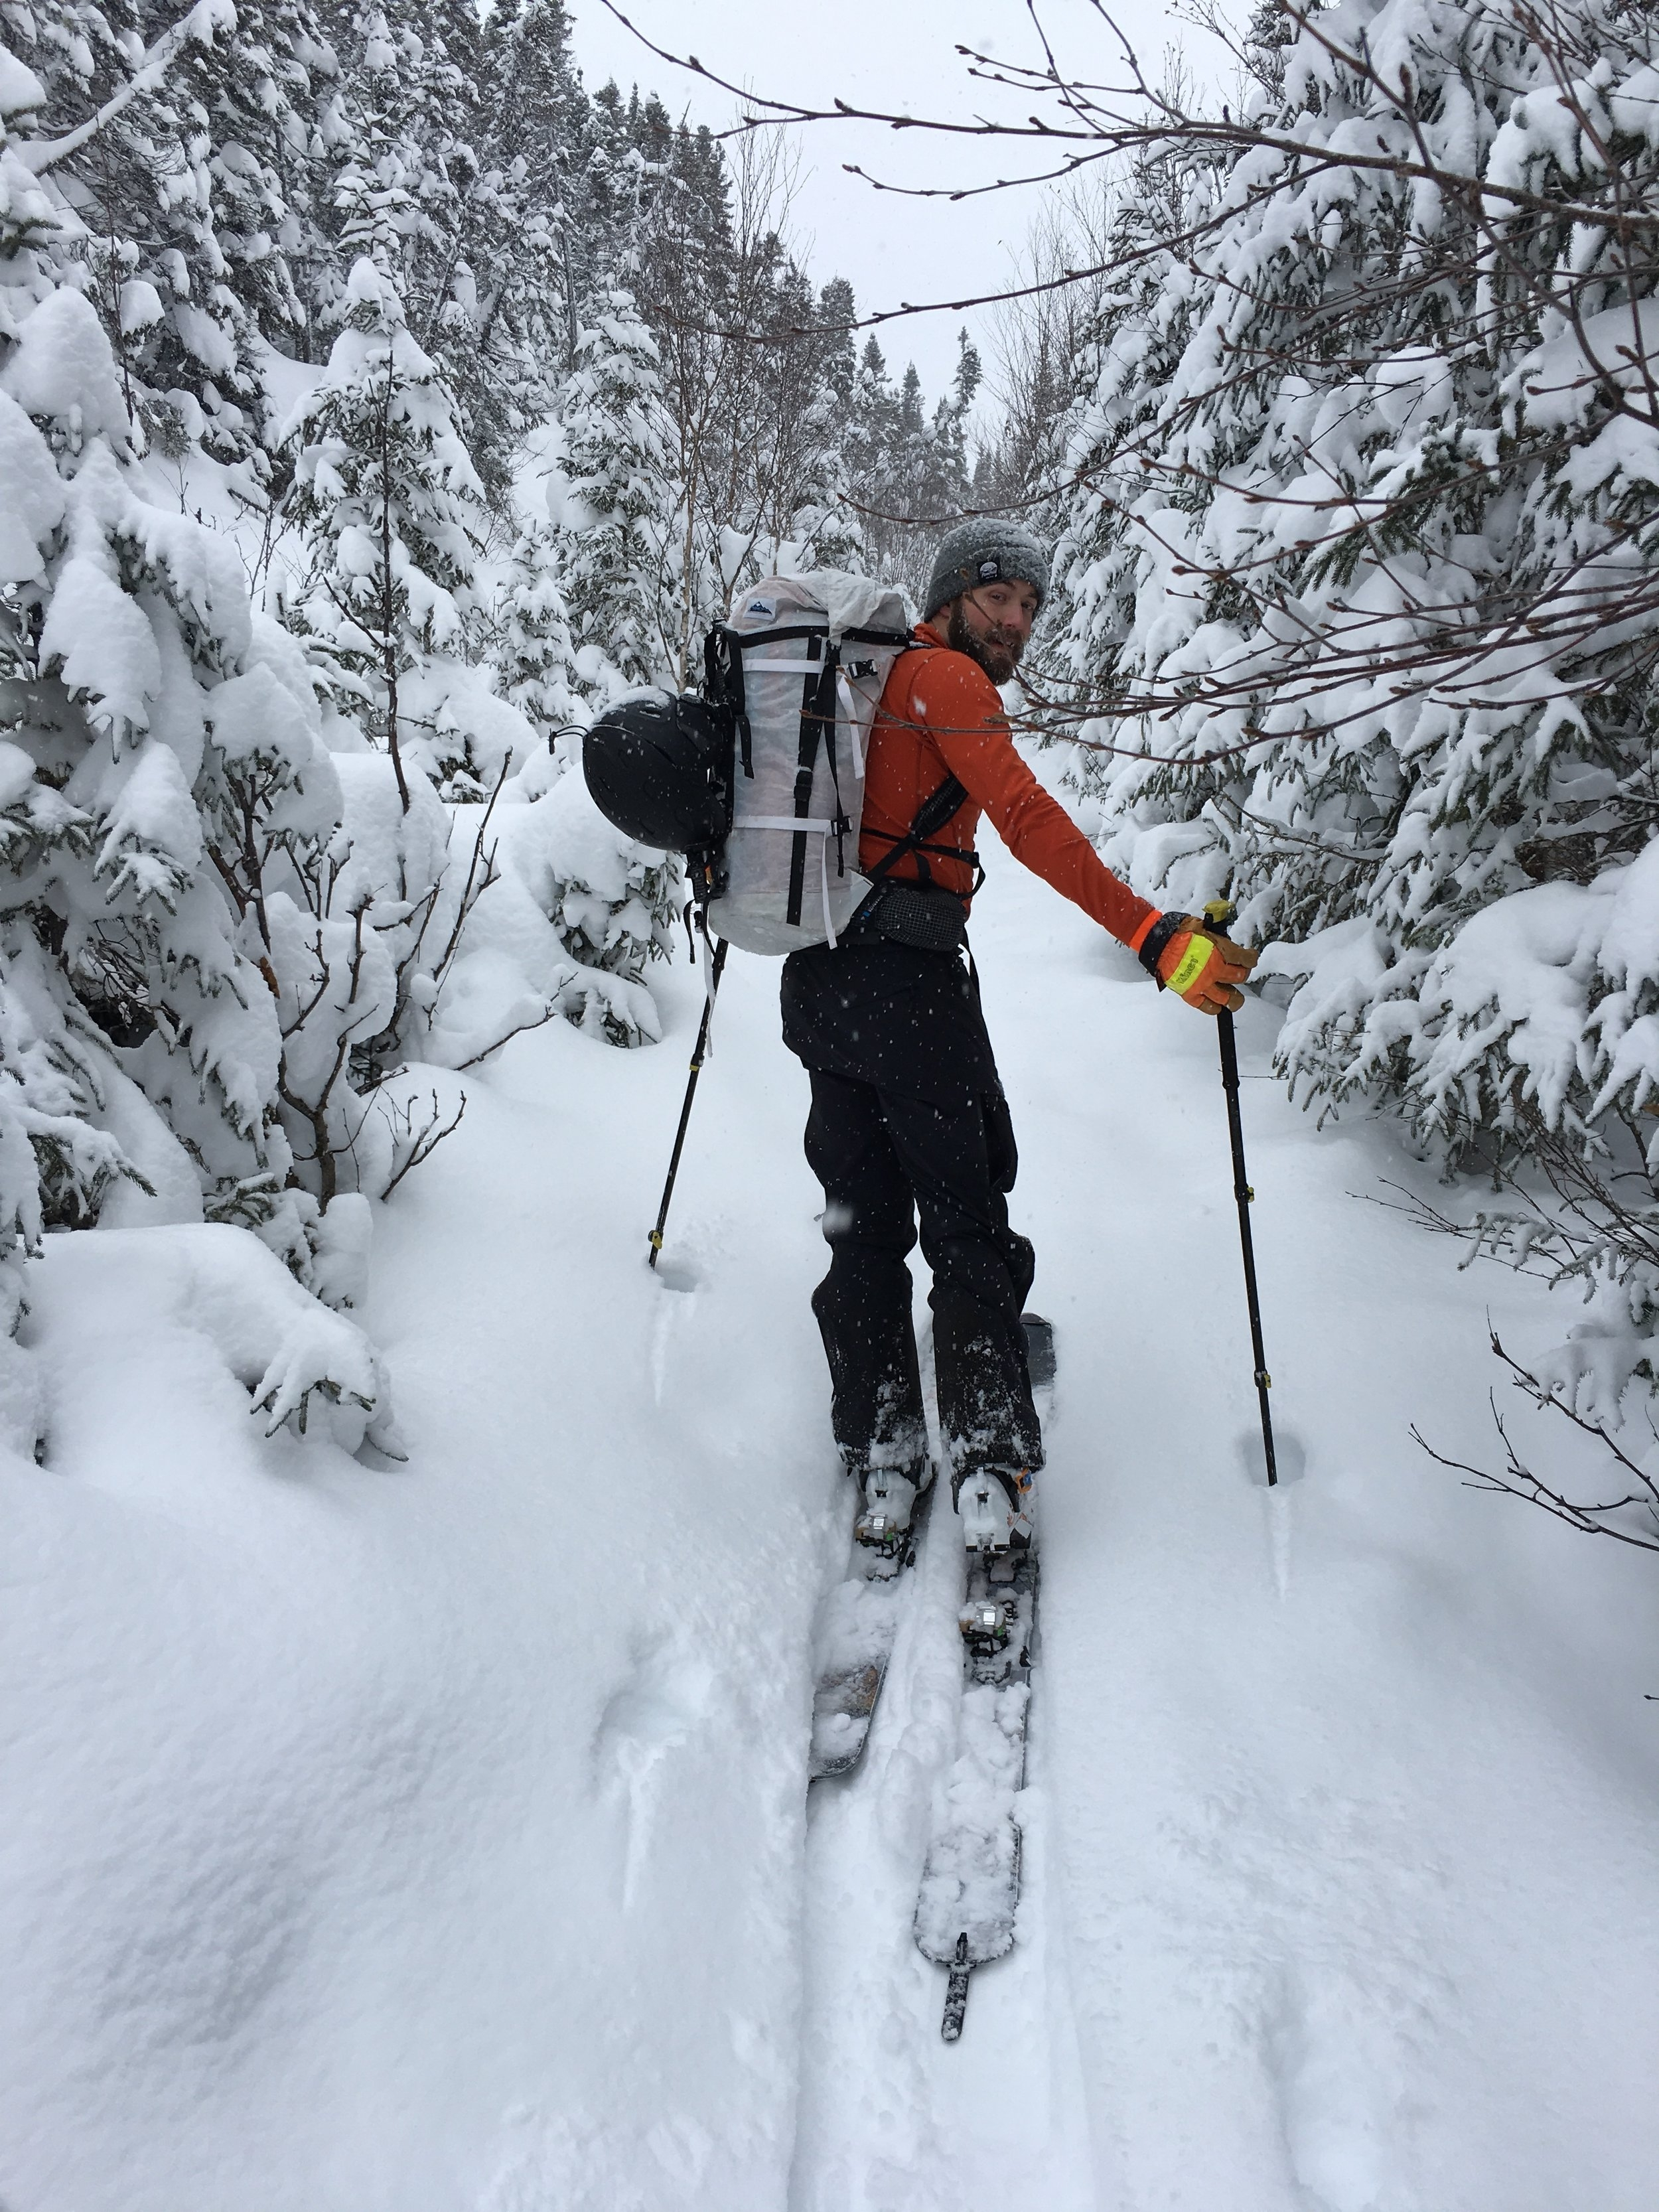 Minutes from the car we are breaking trail in the coldest, lightest POW my skis have been on in a while! Gibbs cannot stop grinning.